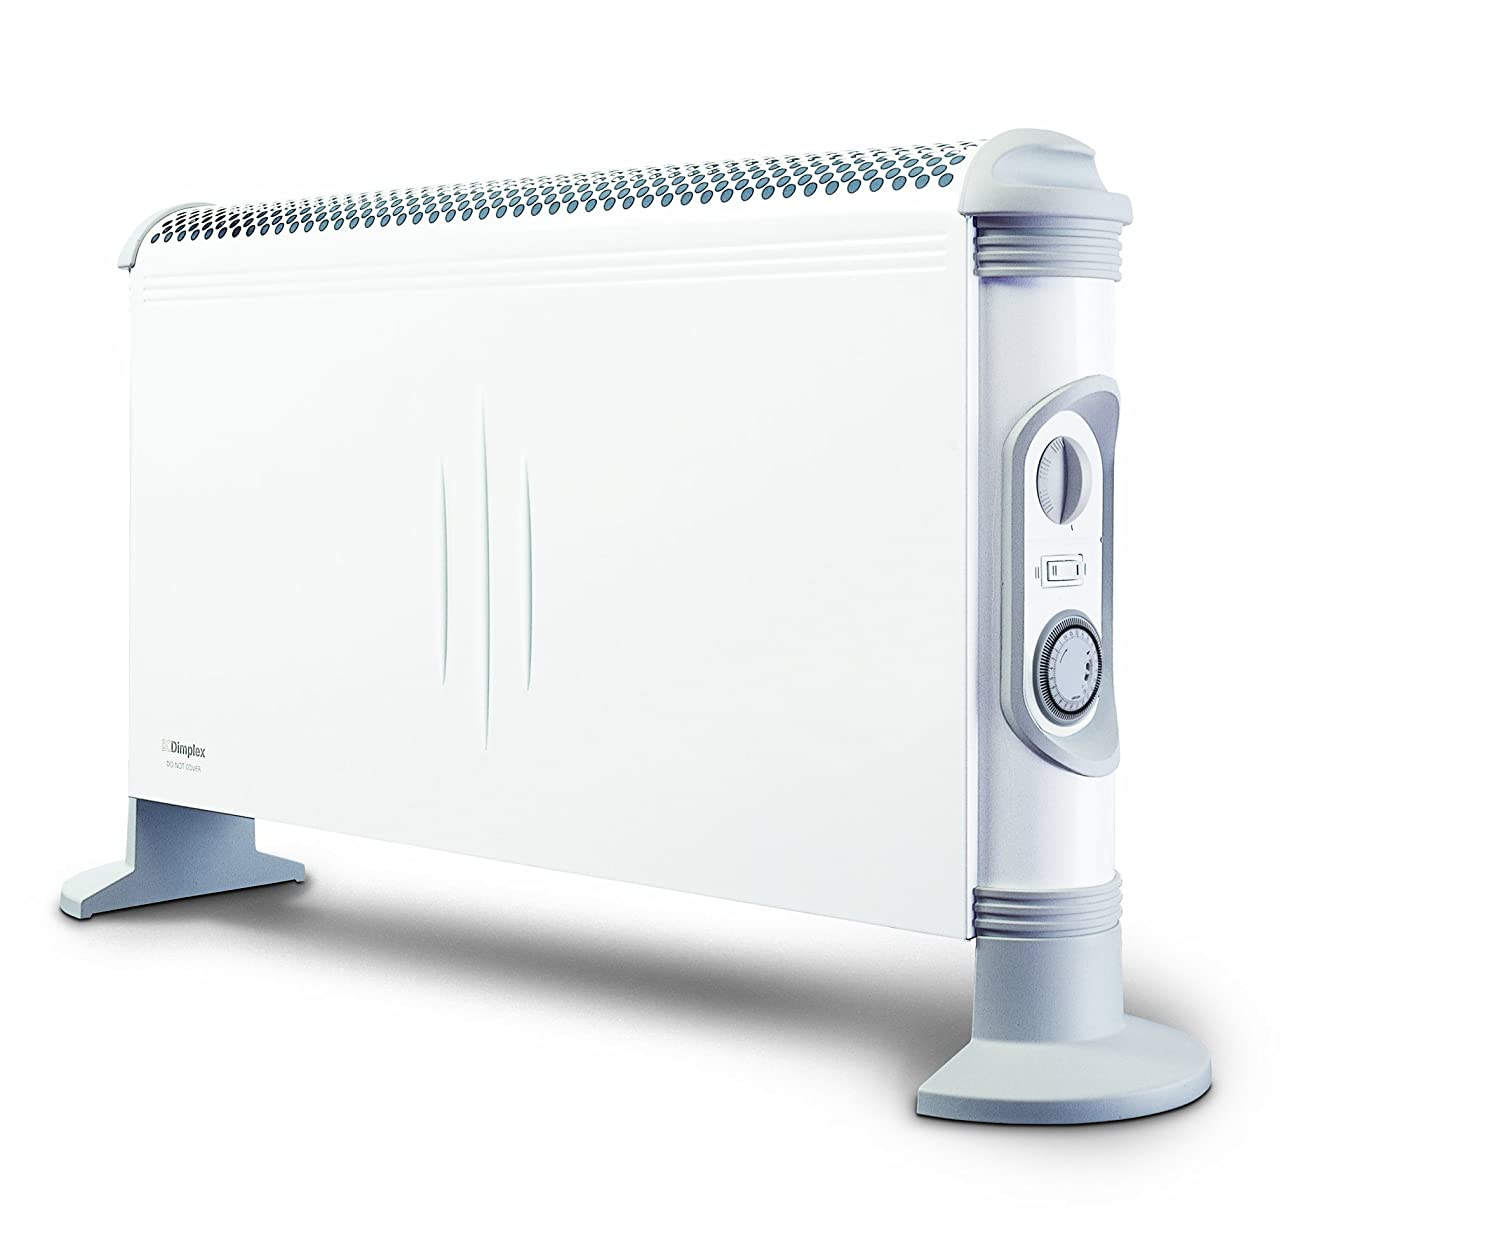 Dimplex 3 Kw Convector Heater With Timer And Thermostat Amazonco Future Batteries That Could Power Your Home Techcentral Kitchen